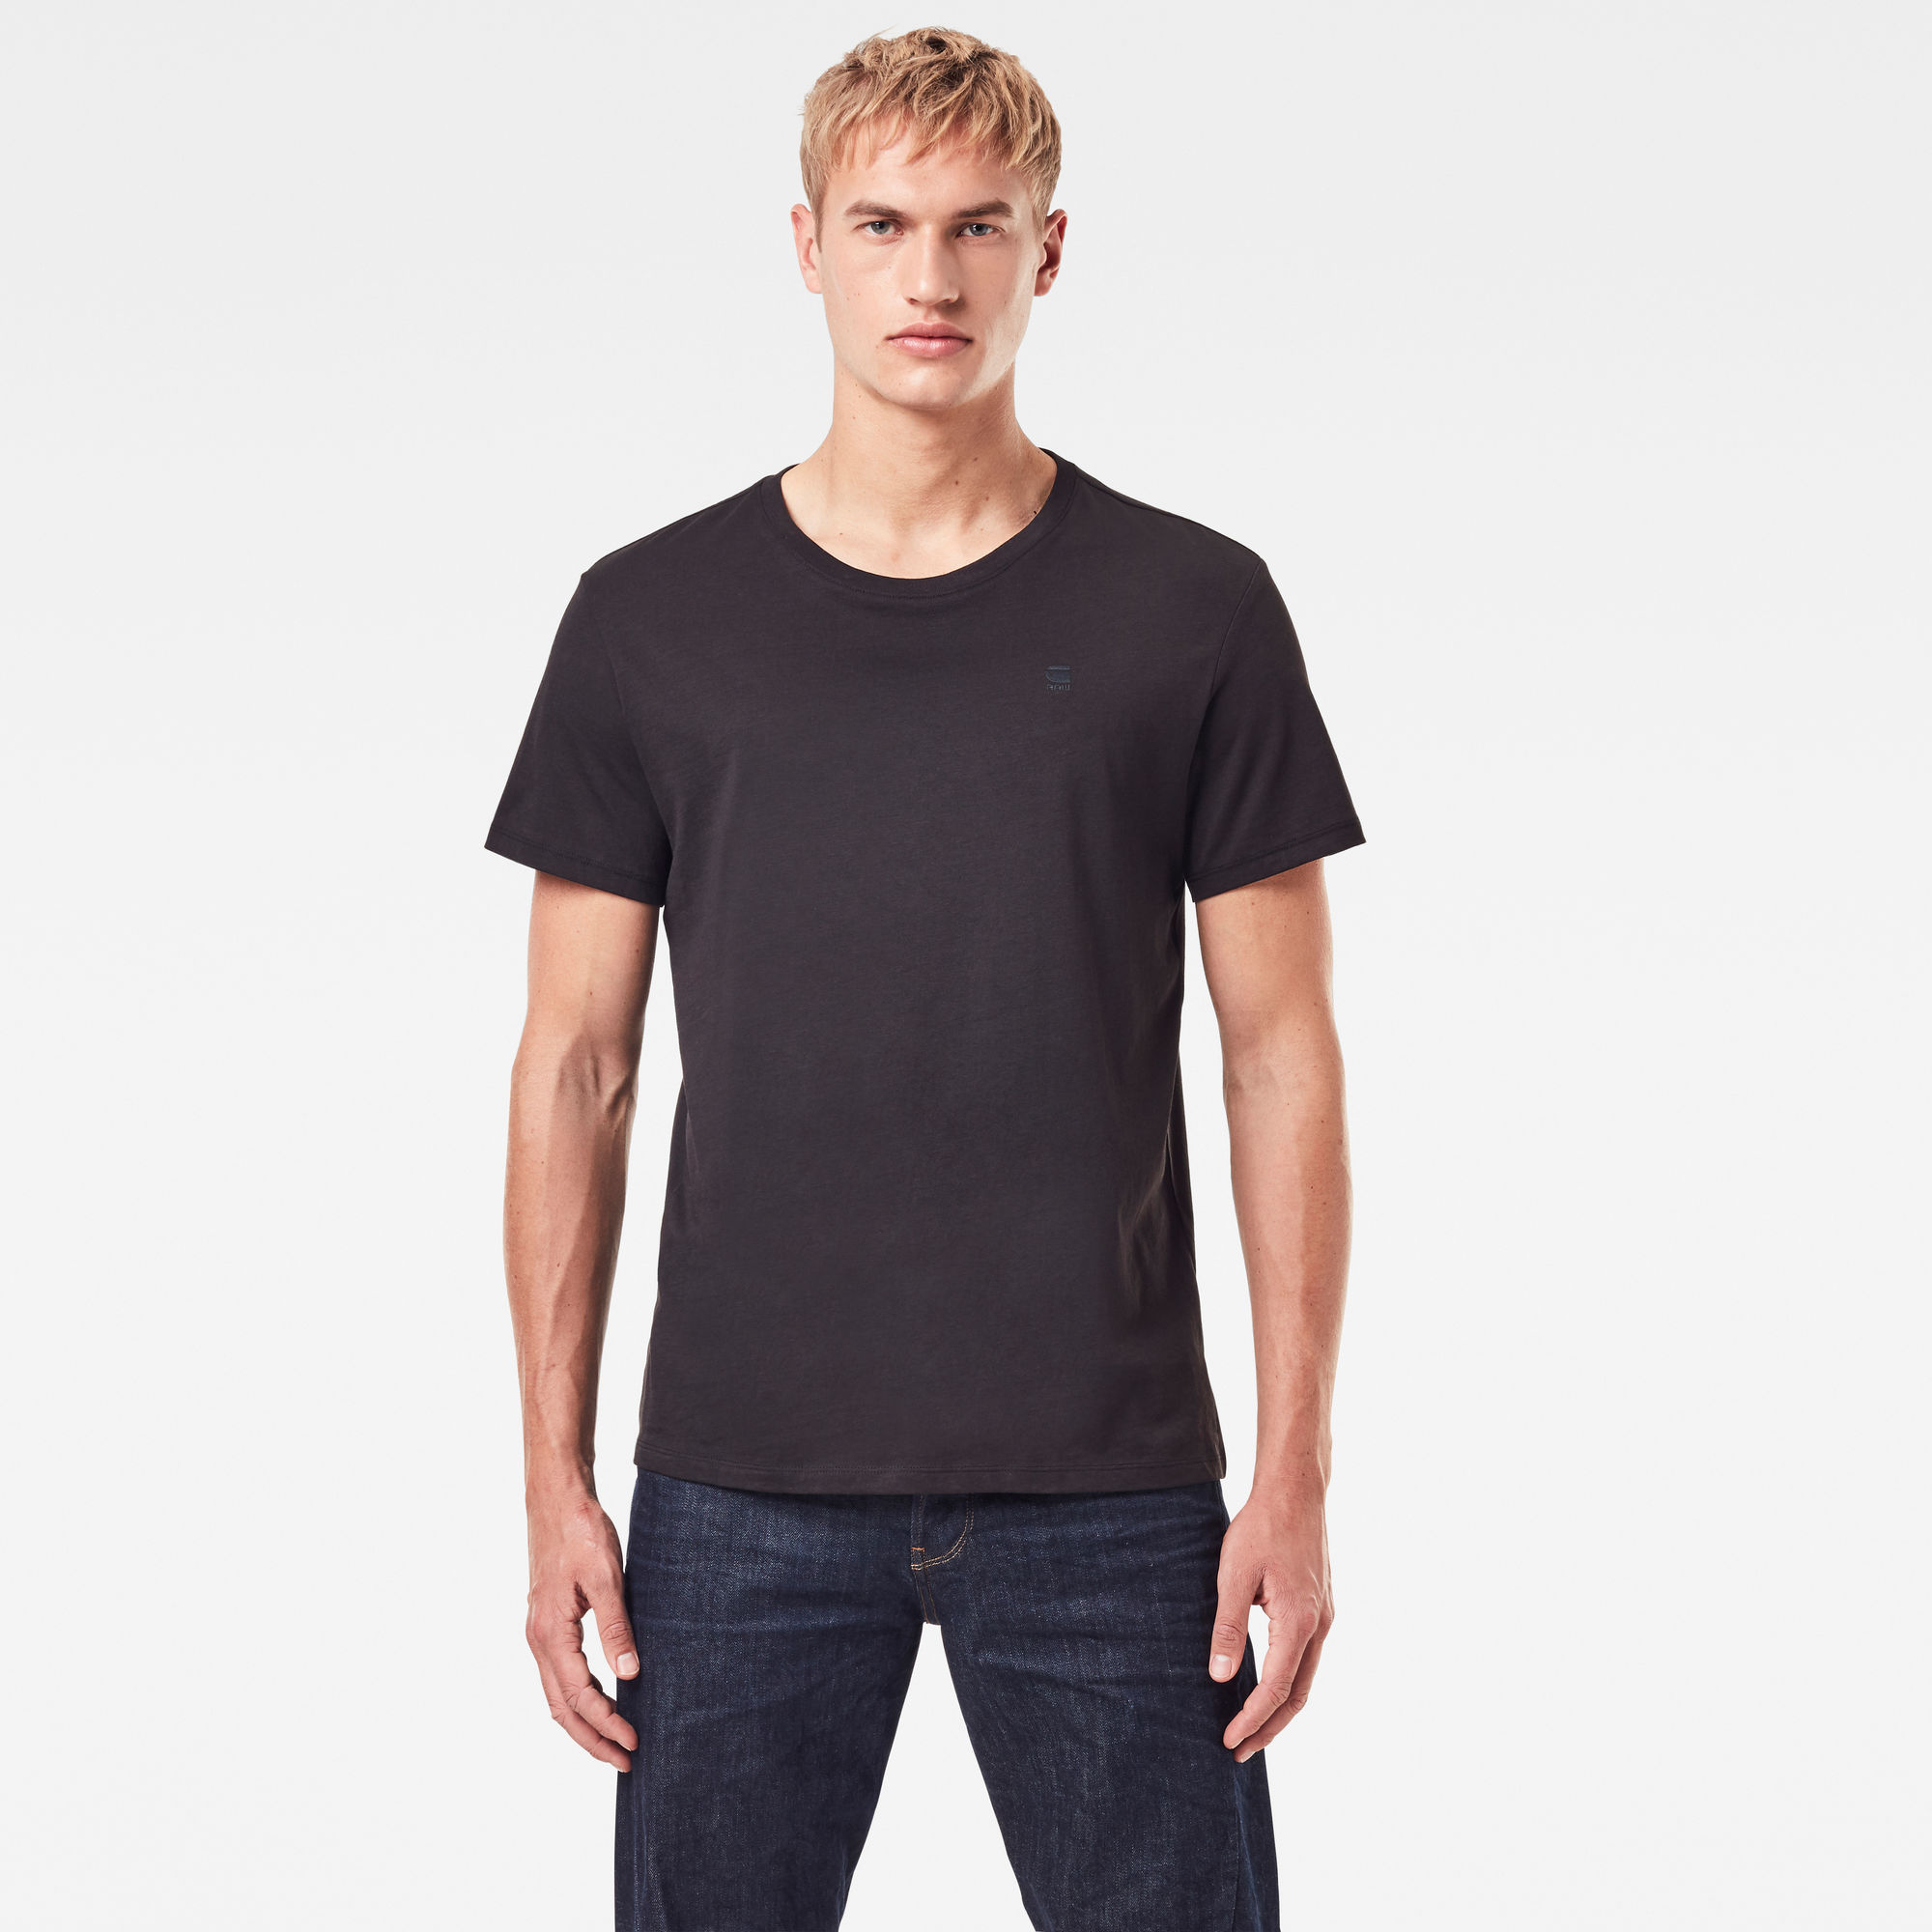 Image of G Star Raw Base Heather T-Shirt 2-Pack